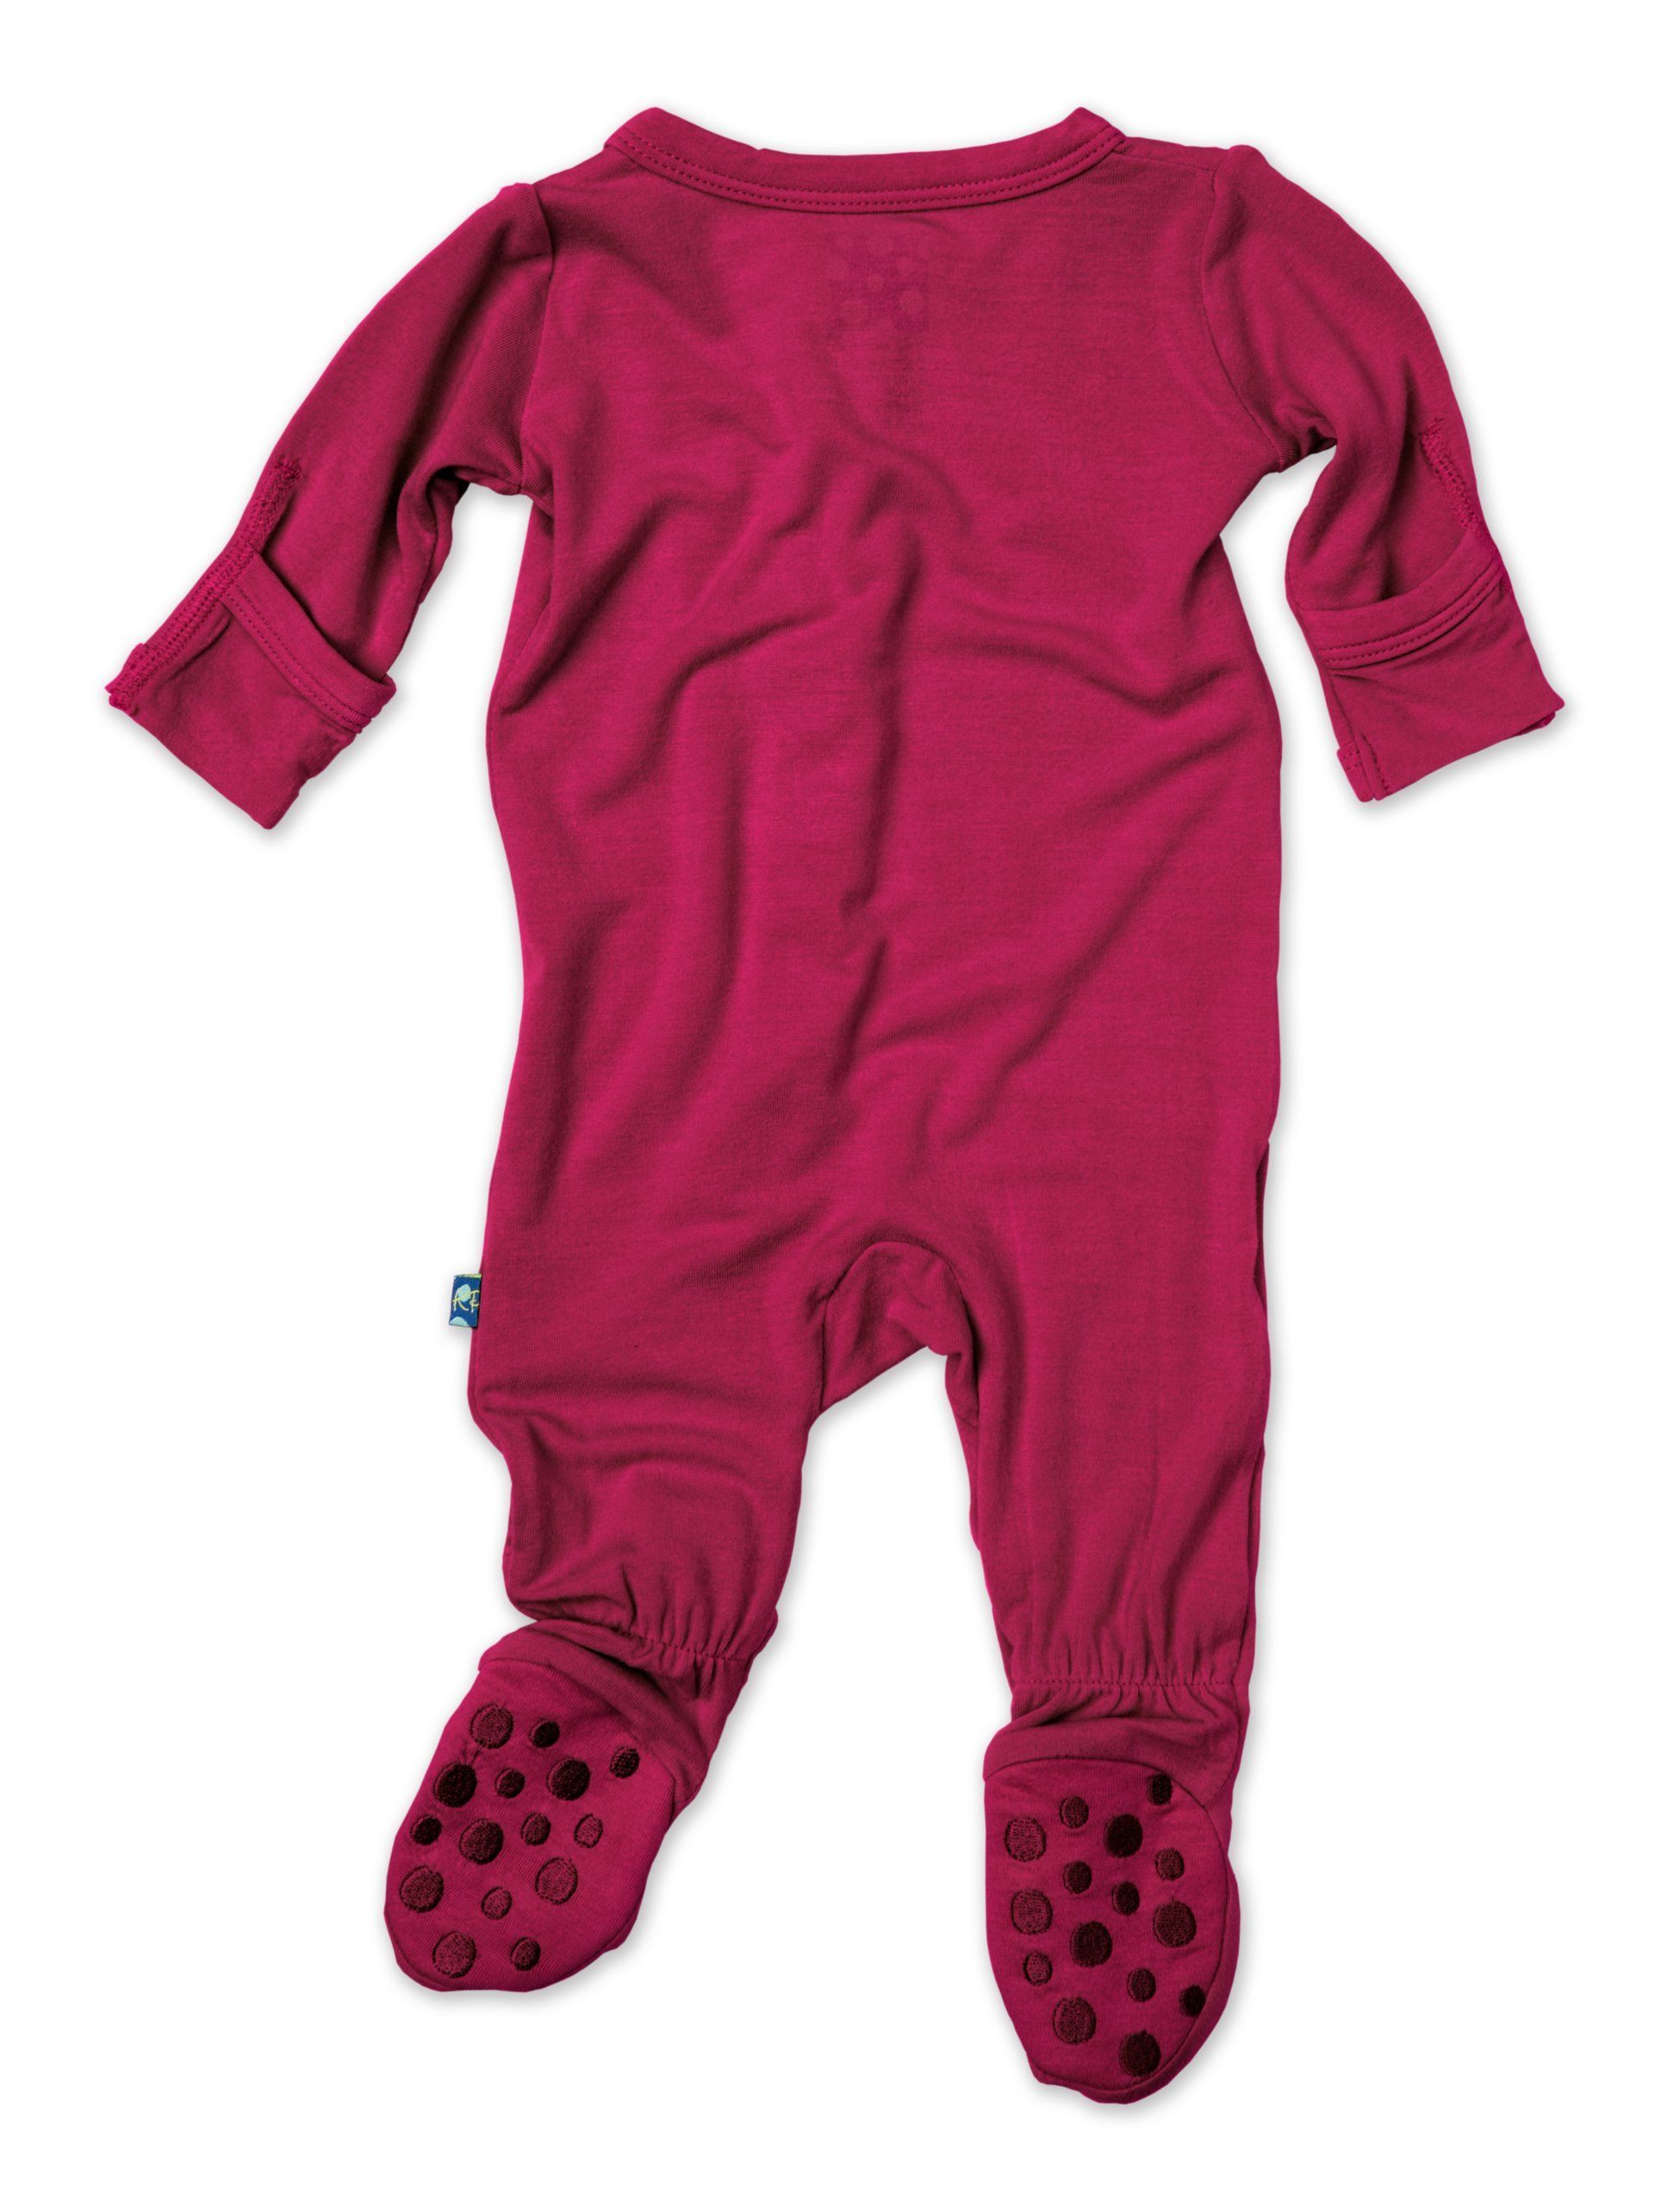 KicKee Pants Footie Orchid 3 6 Months